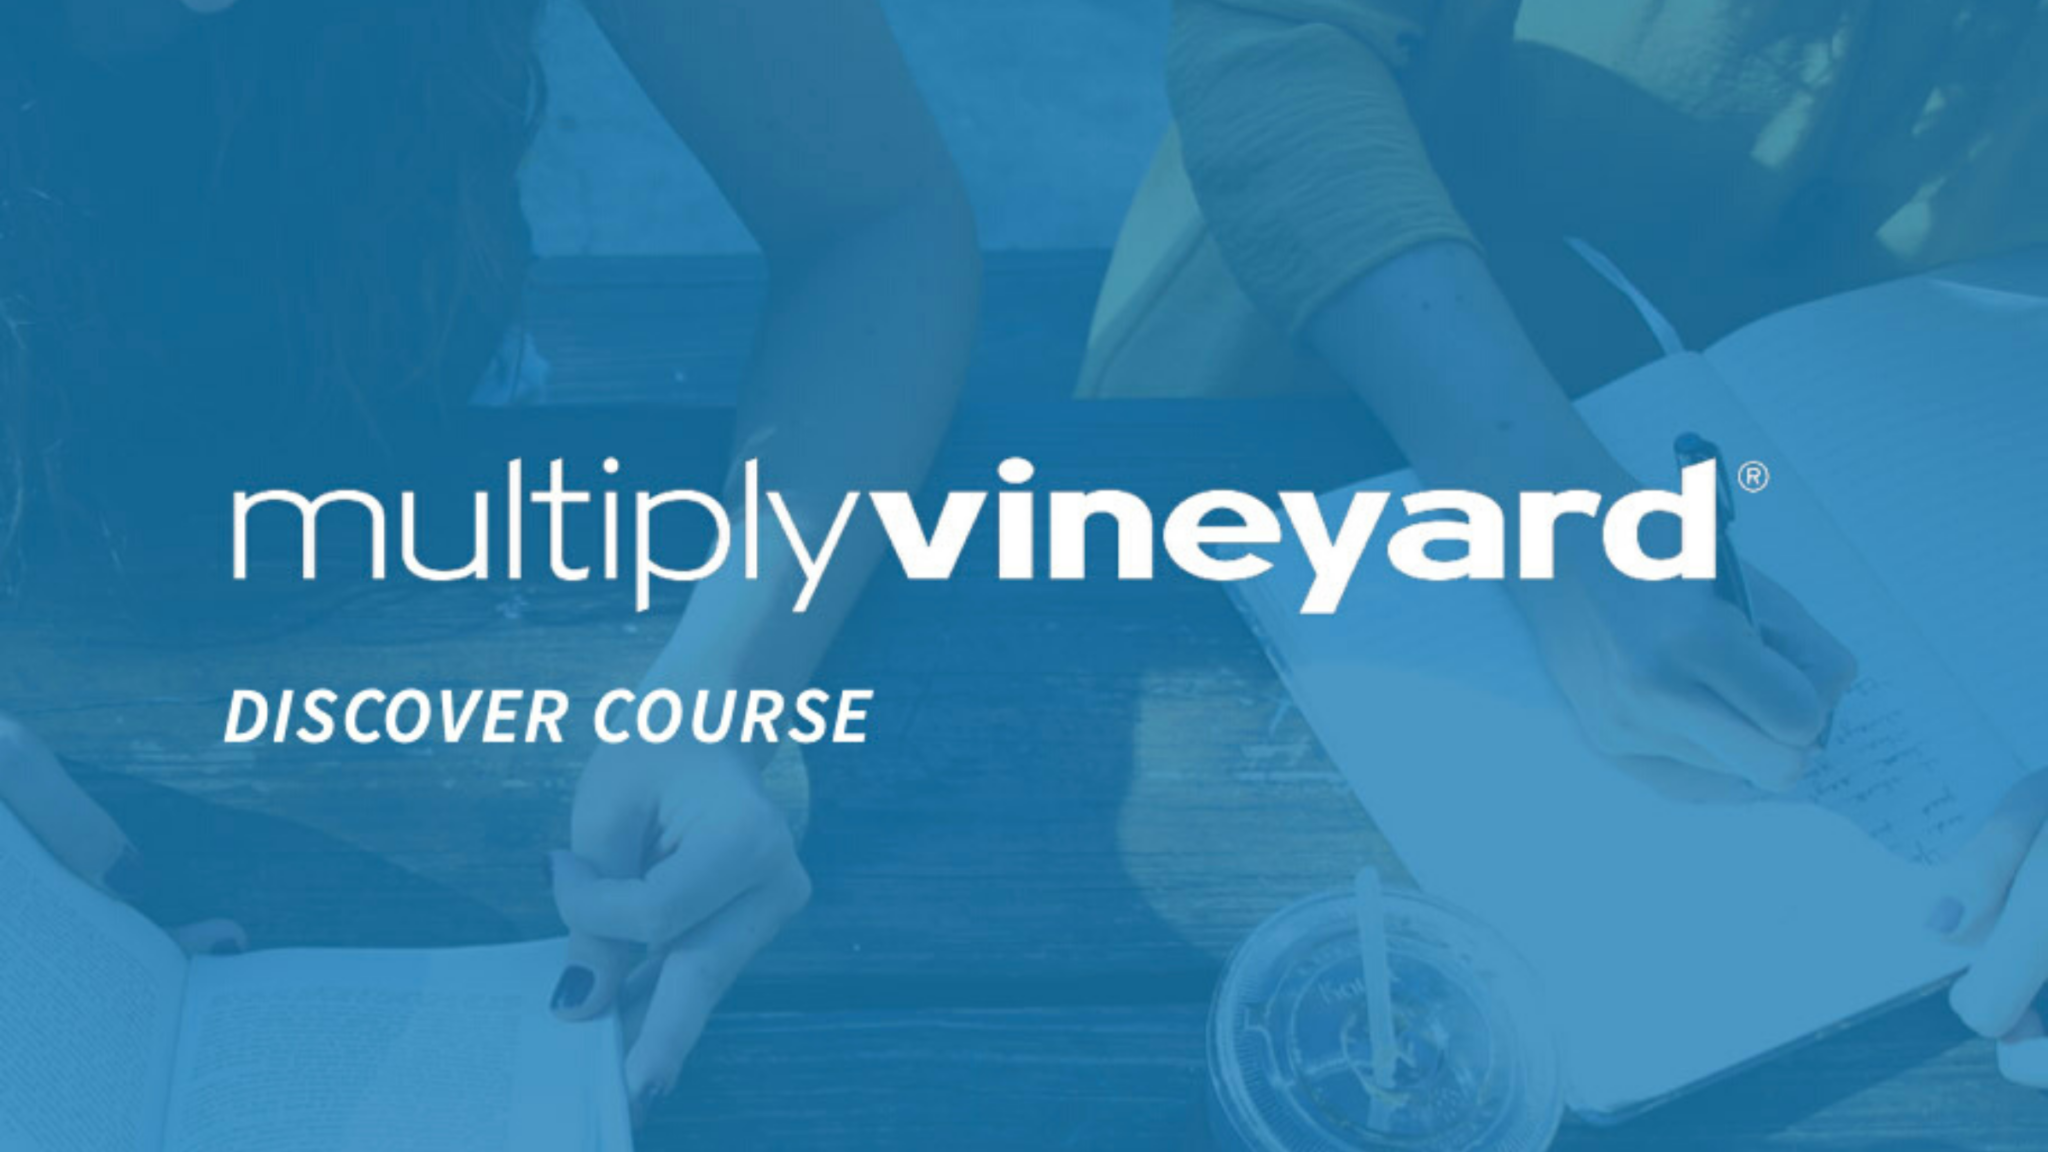 Multiply Vineyard Discover Course (Online)